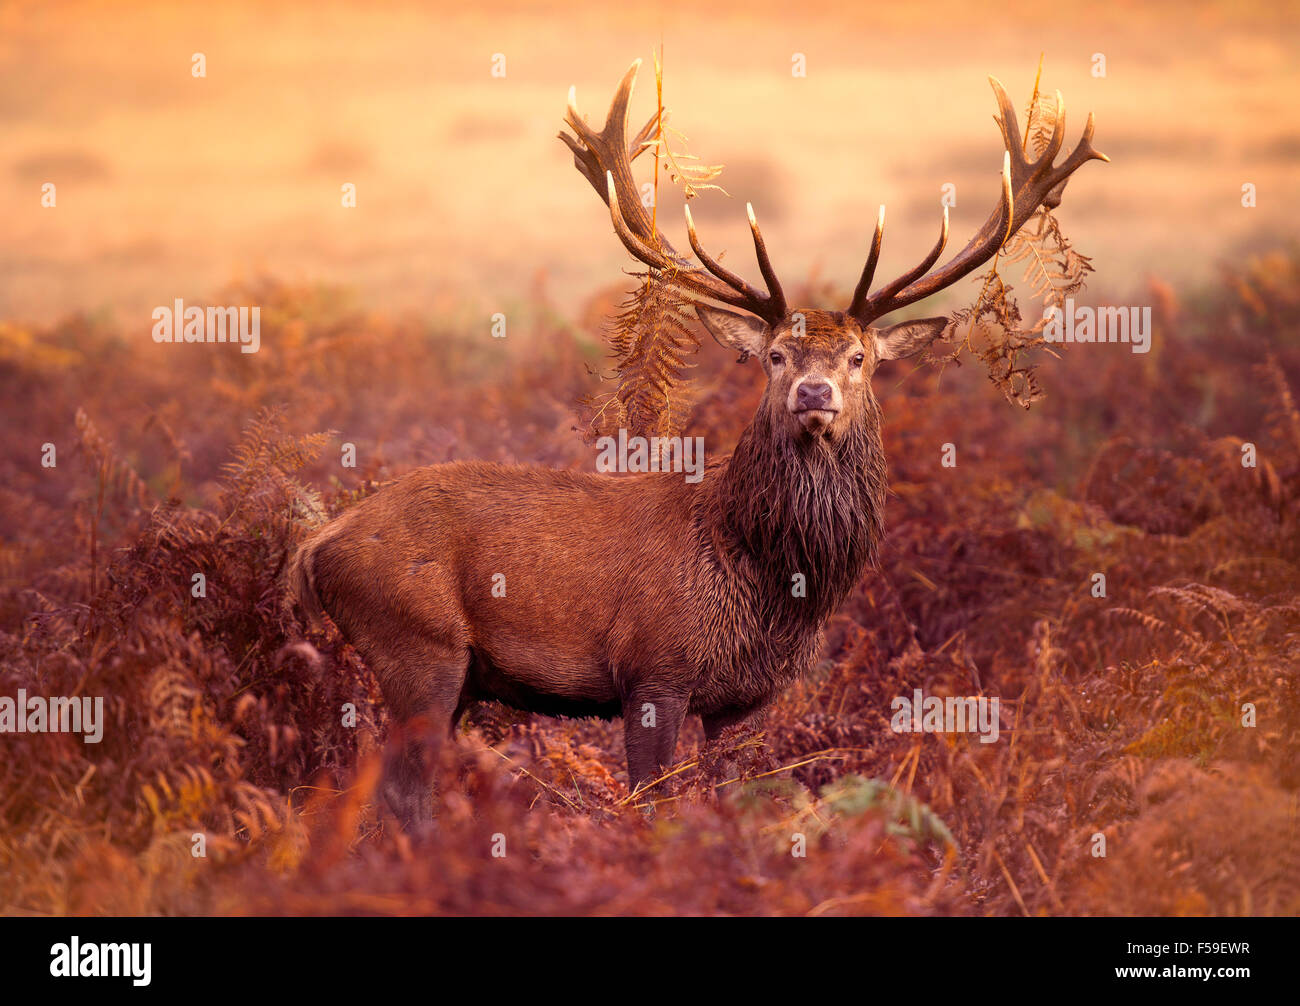 Red Deer Hirsch in den frühen Morgennebel Stockbild